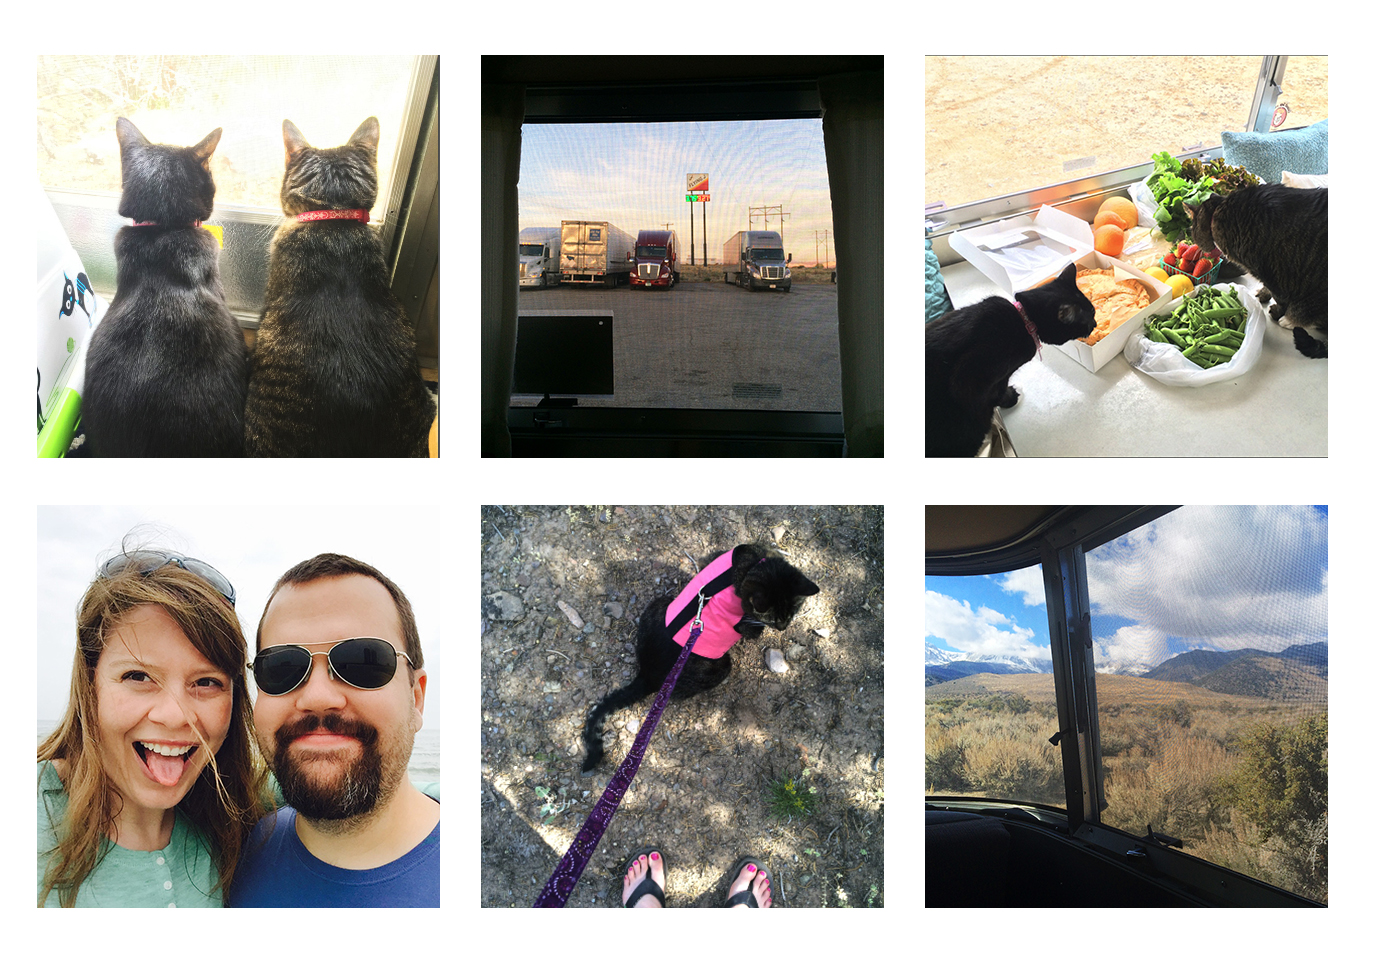 """Some iPhone photos of our time on the road... From upper left: Cats enjoying the view of some birds, our first night spent at a Flying J Truck Stop, cats approving the farmer's market purchases in Anza-Borrego Desert State Park, having a bit of fun, walking a cat (which is more like a lot of resting with a few steps here and there), and a typical """"office view"""" from the Airstream."""